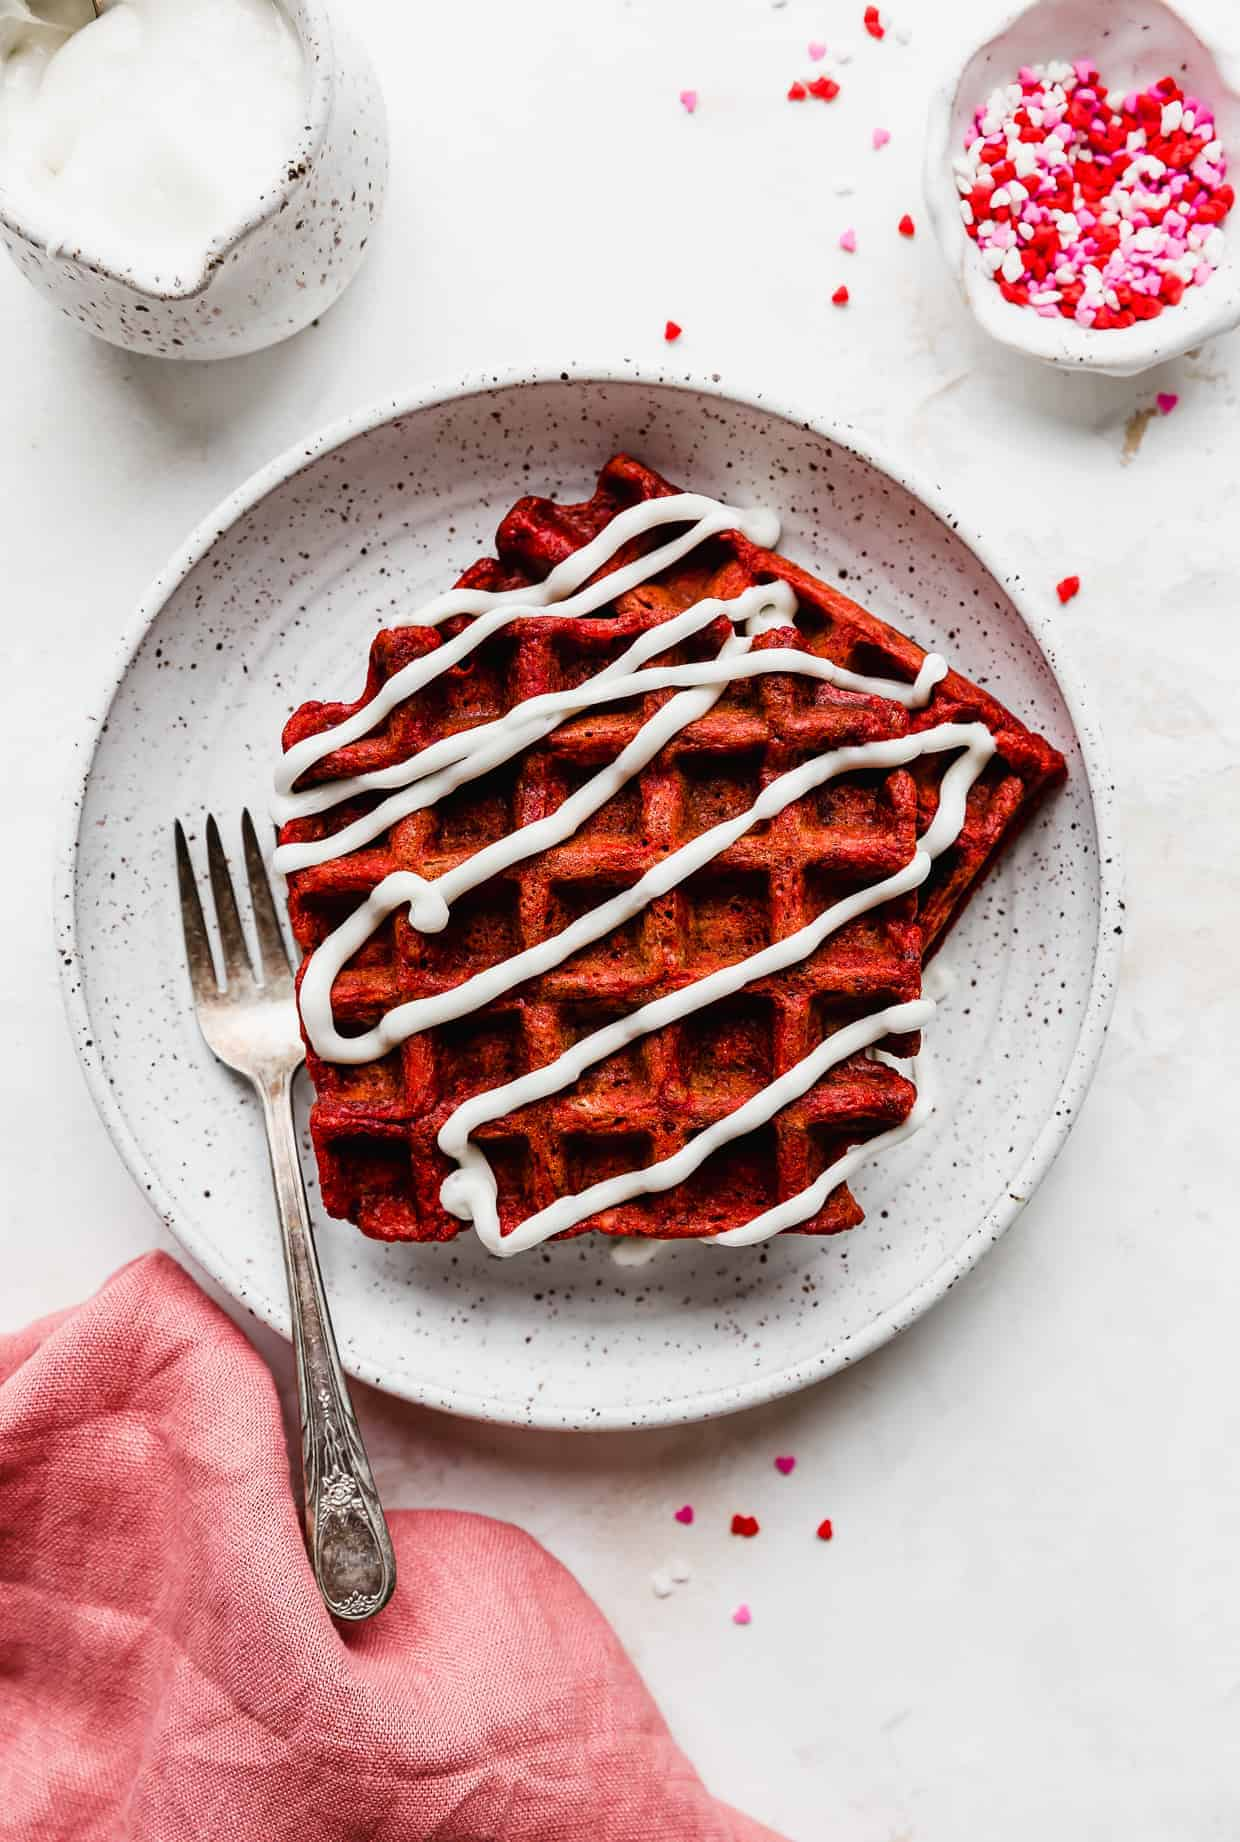 A white plate with 2 red velvet waffles on it drizzled in a white cream cheese glaze, against a white background.